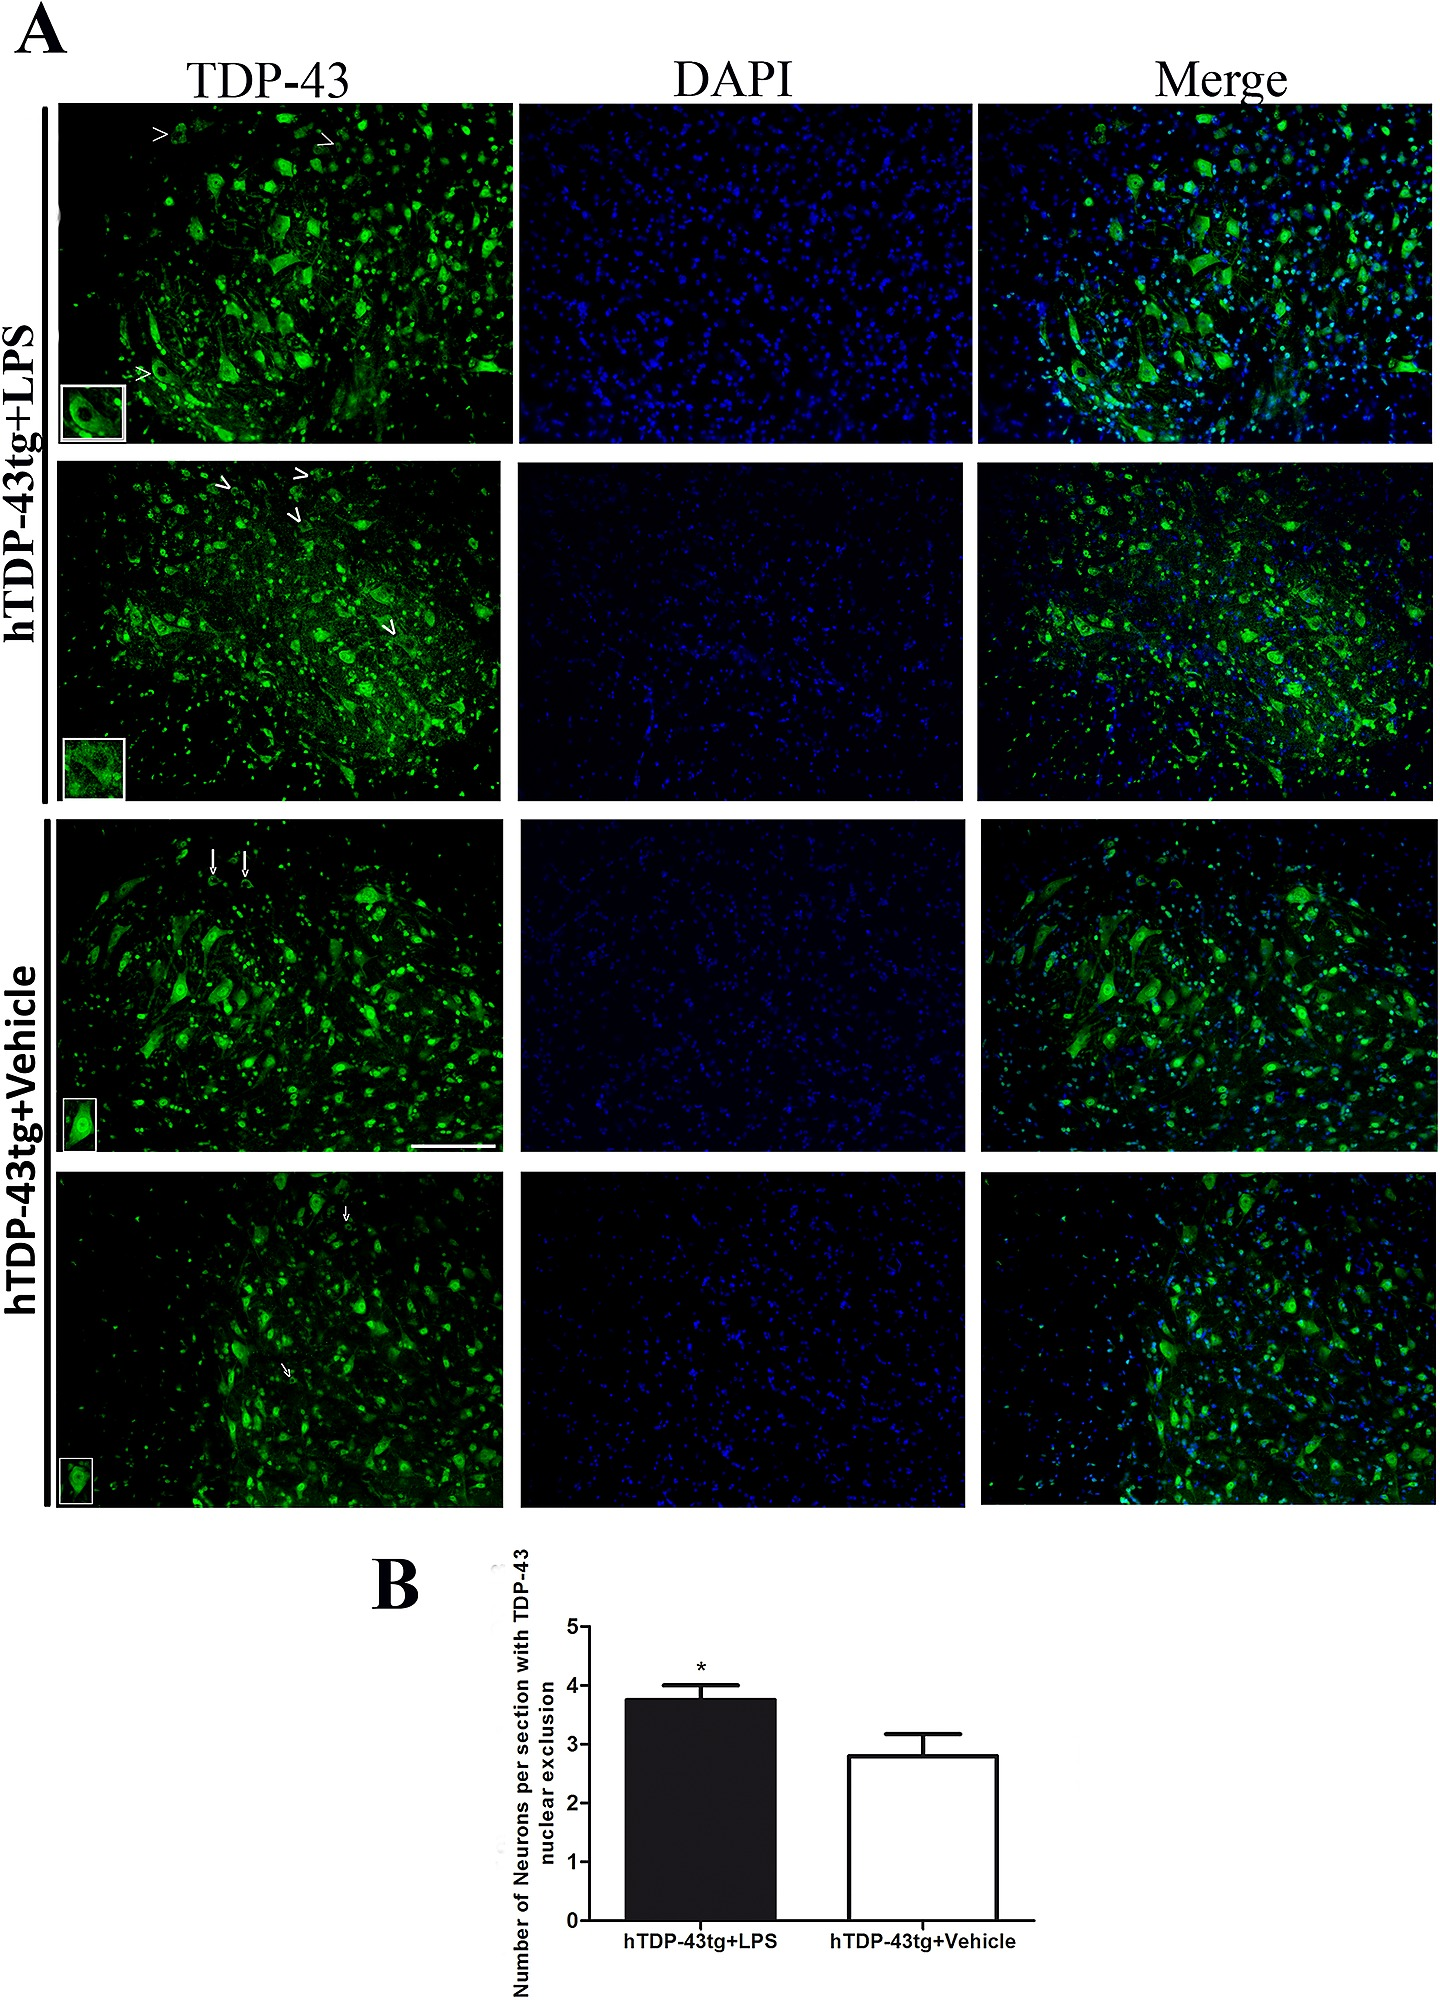 Chronic Lps Treatment Enhanced Nuclear Exclusion Of Tdp 43 In Spinal